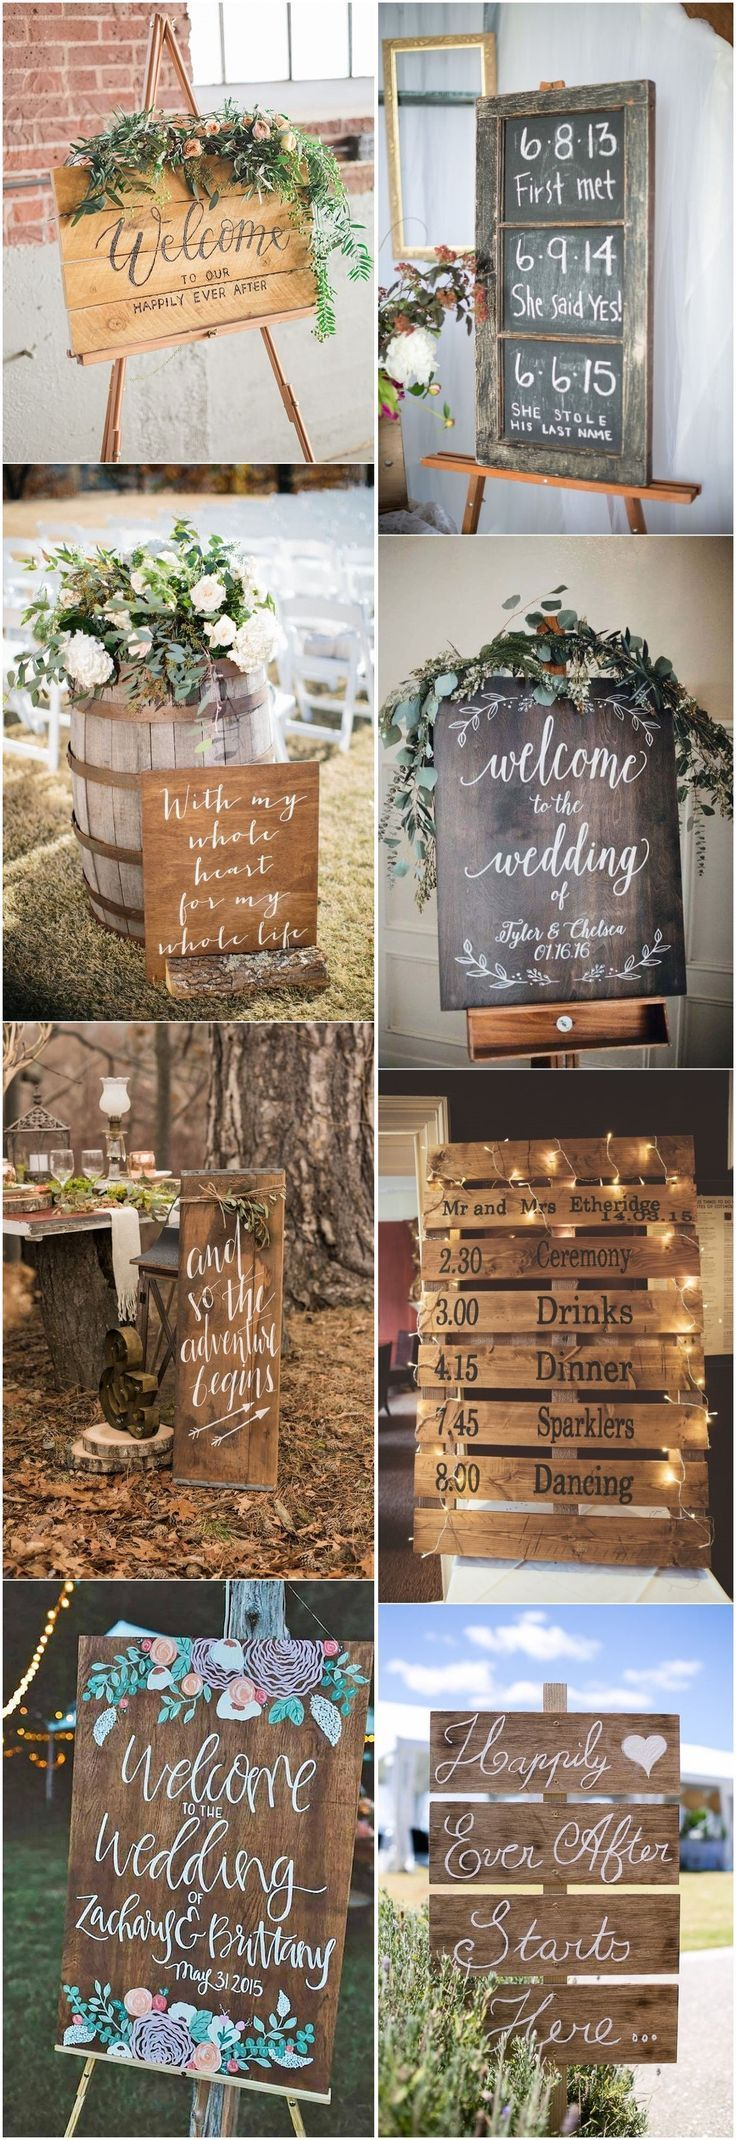 18 Rustic Budget-Friendly Rustic Wedding …